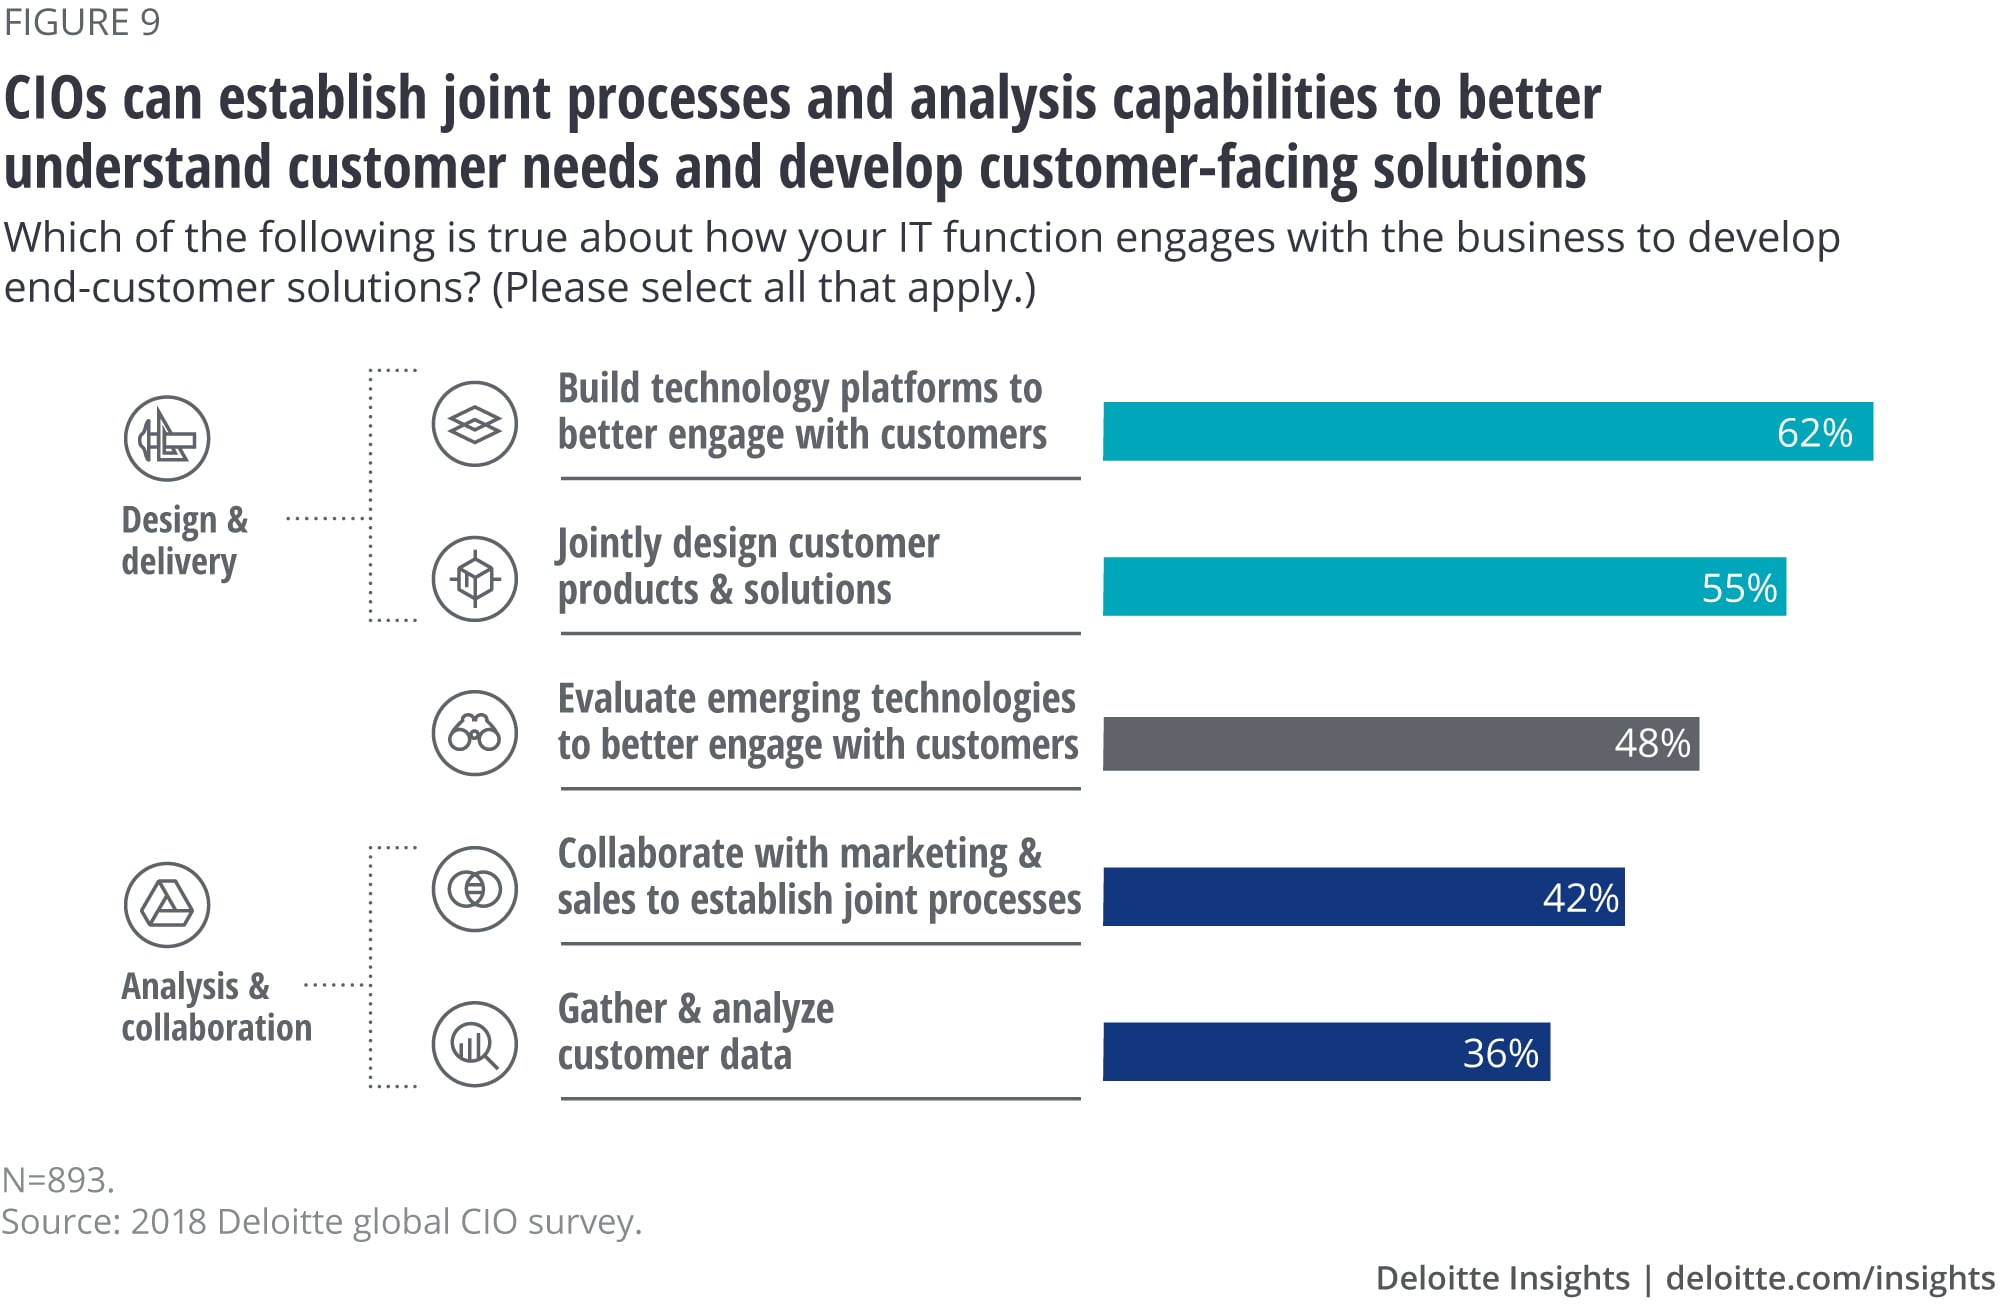 CIOs can establish joint processes and analysis capabilities to better understand customer needs and develop customer-facing solutions